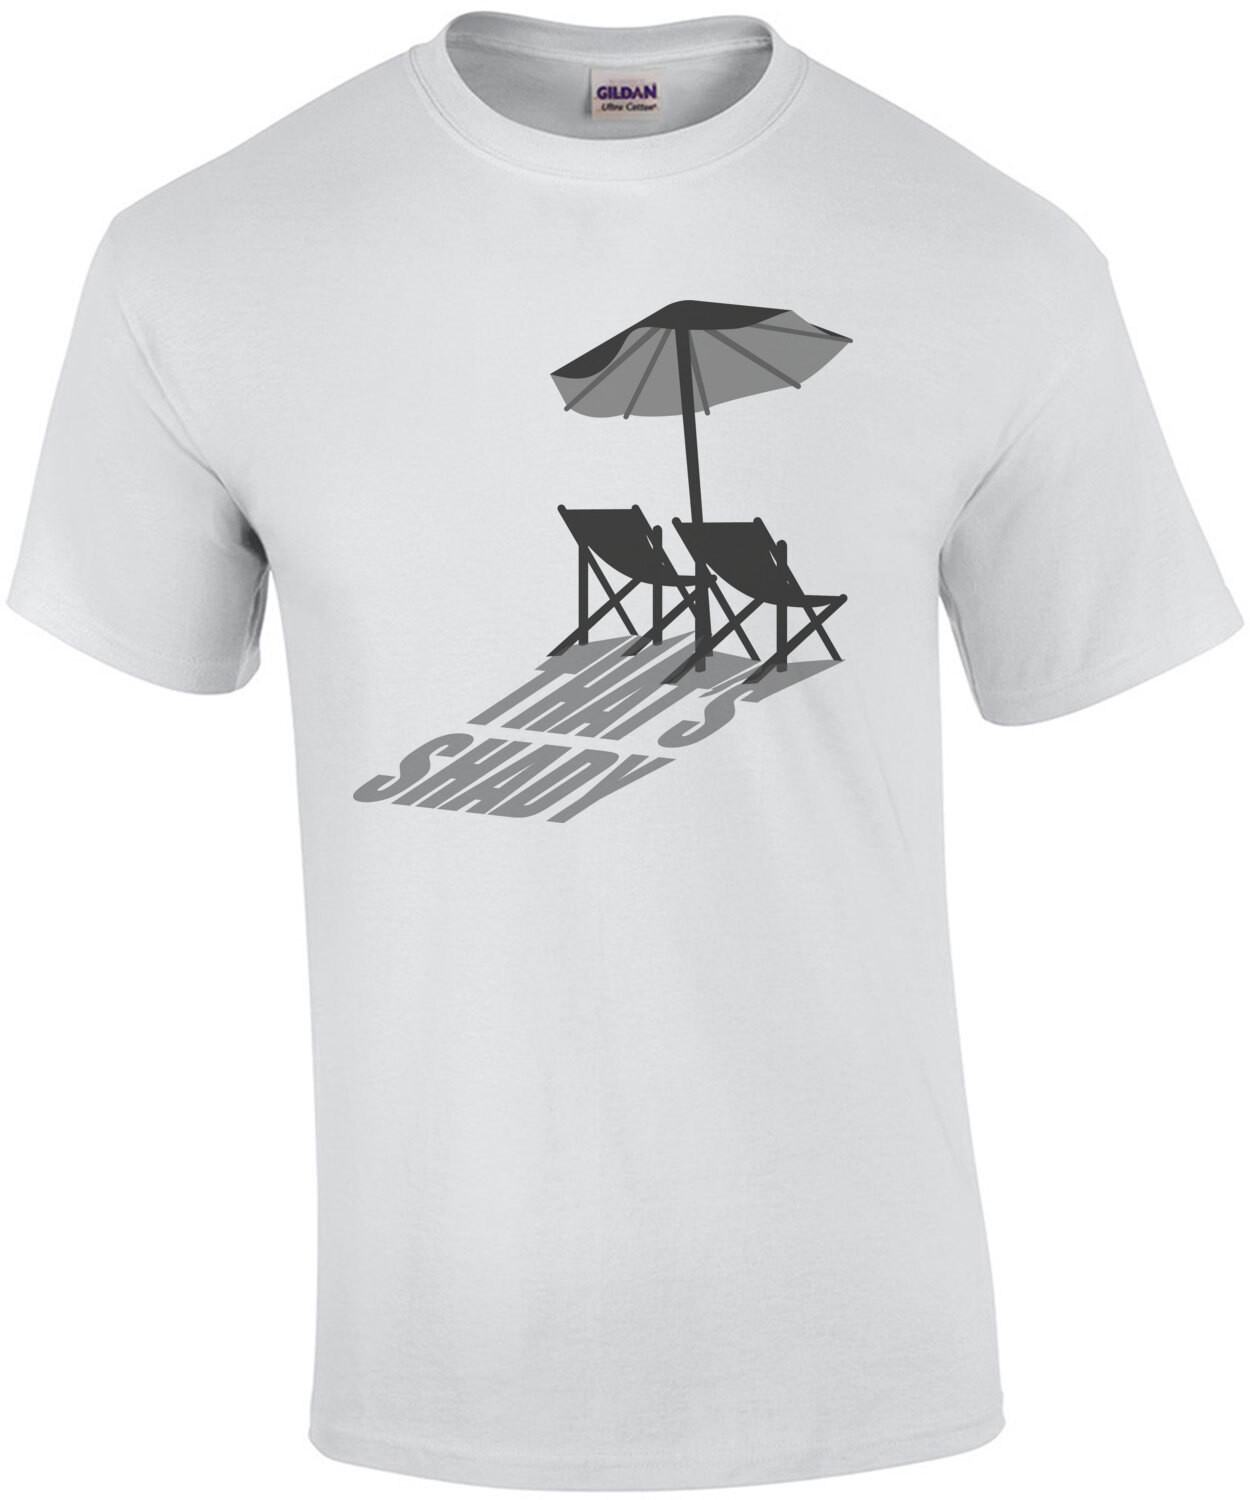 That's Shady - funny t-shirt